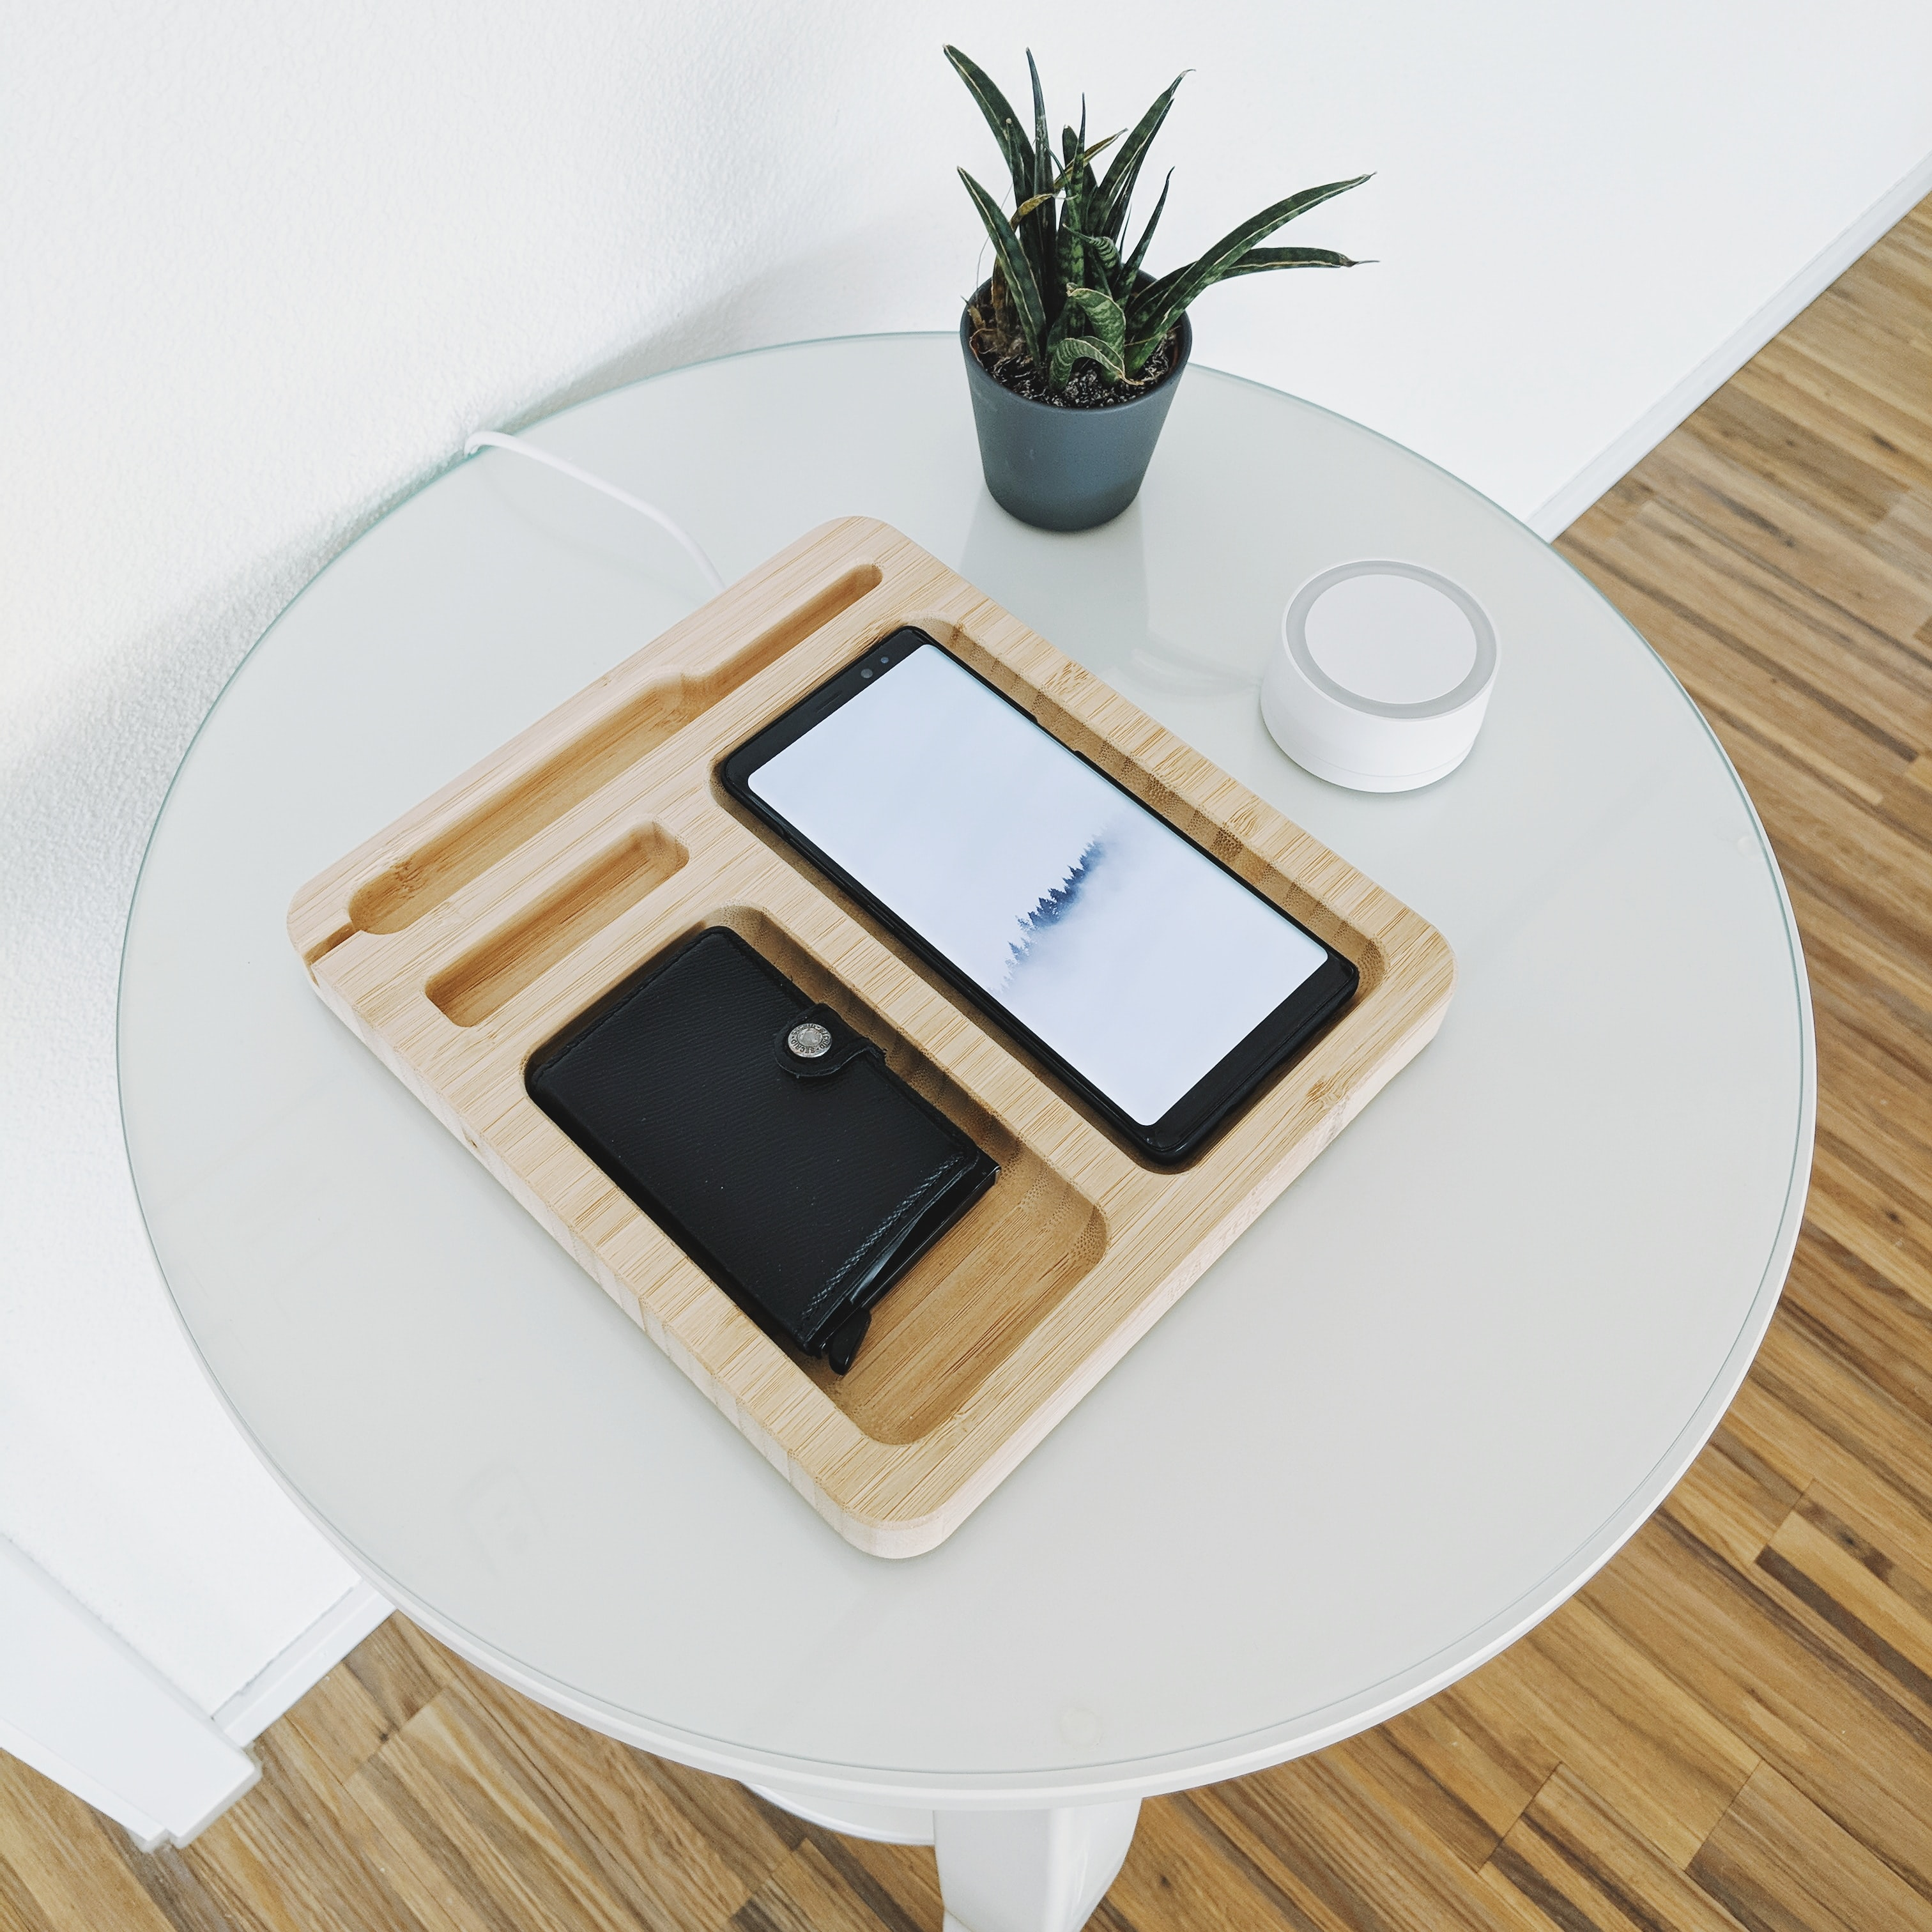 black smartphone with wallet on wooden tray on table